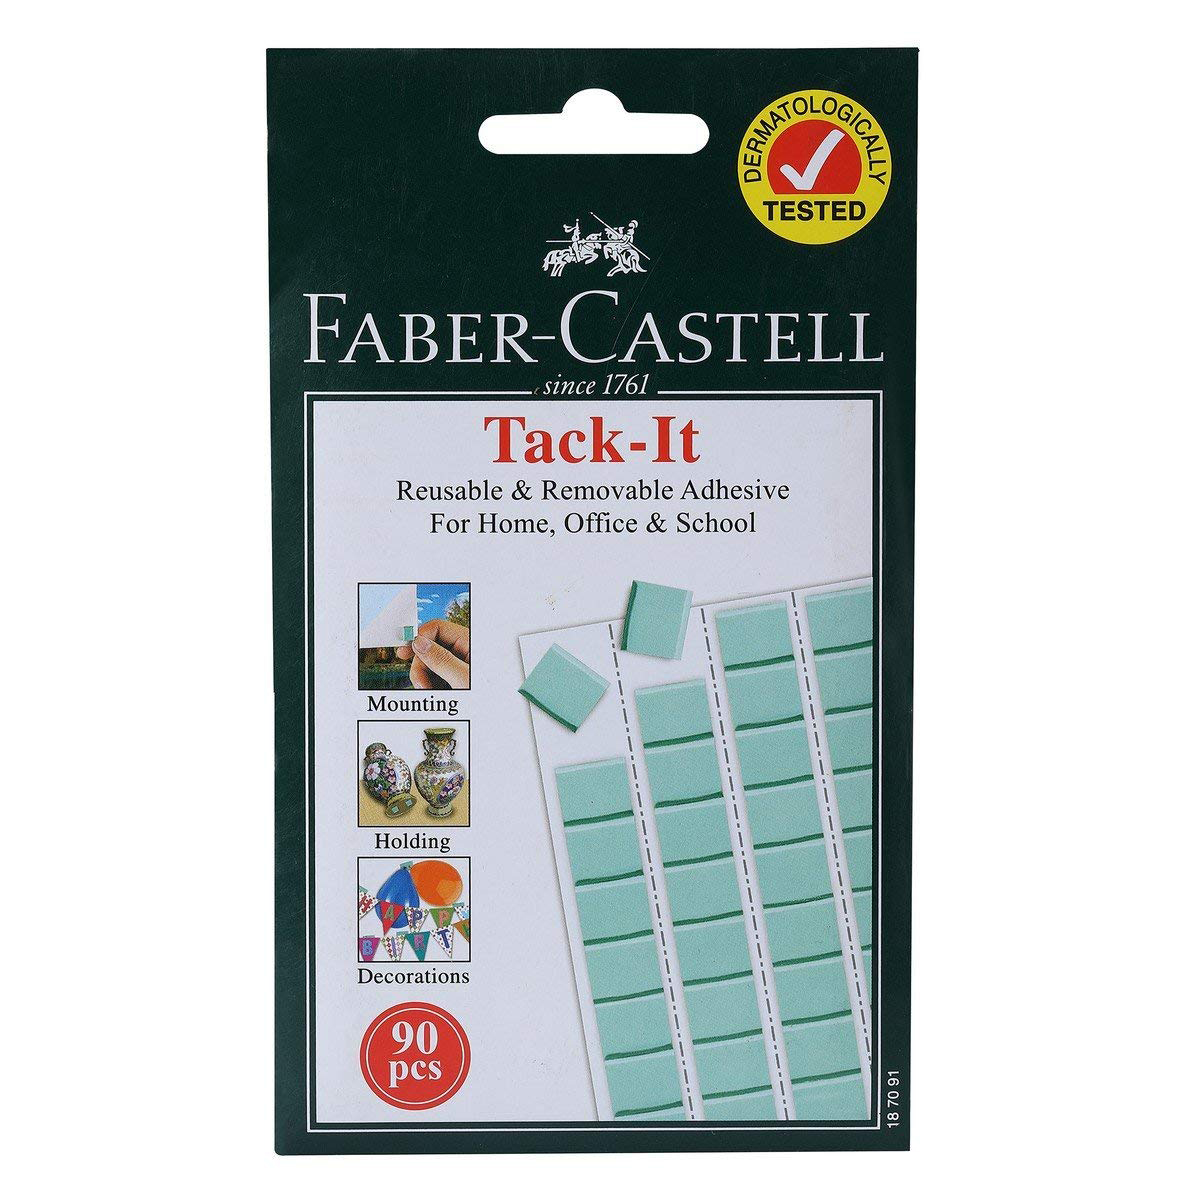 Faber Castell Tack-It Removable Adhesive - Green (pkt/90pcs)